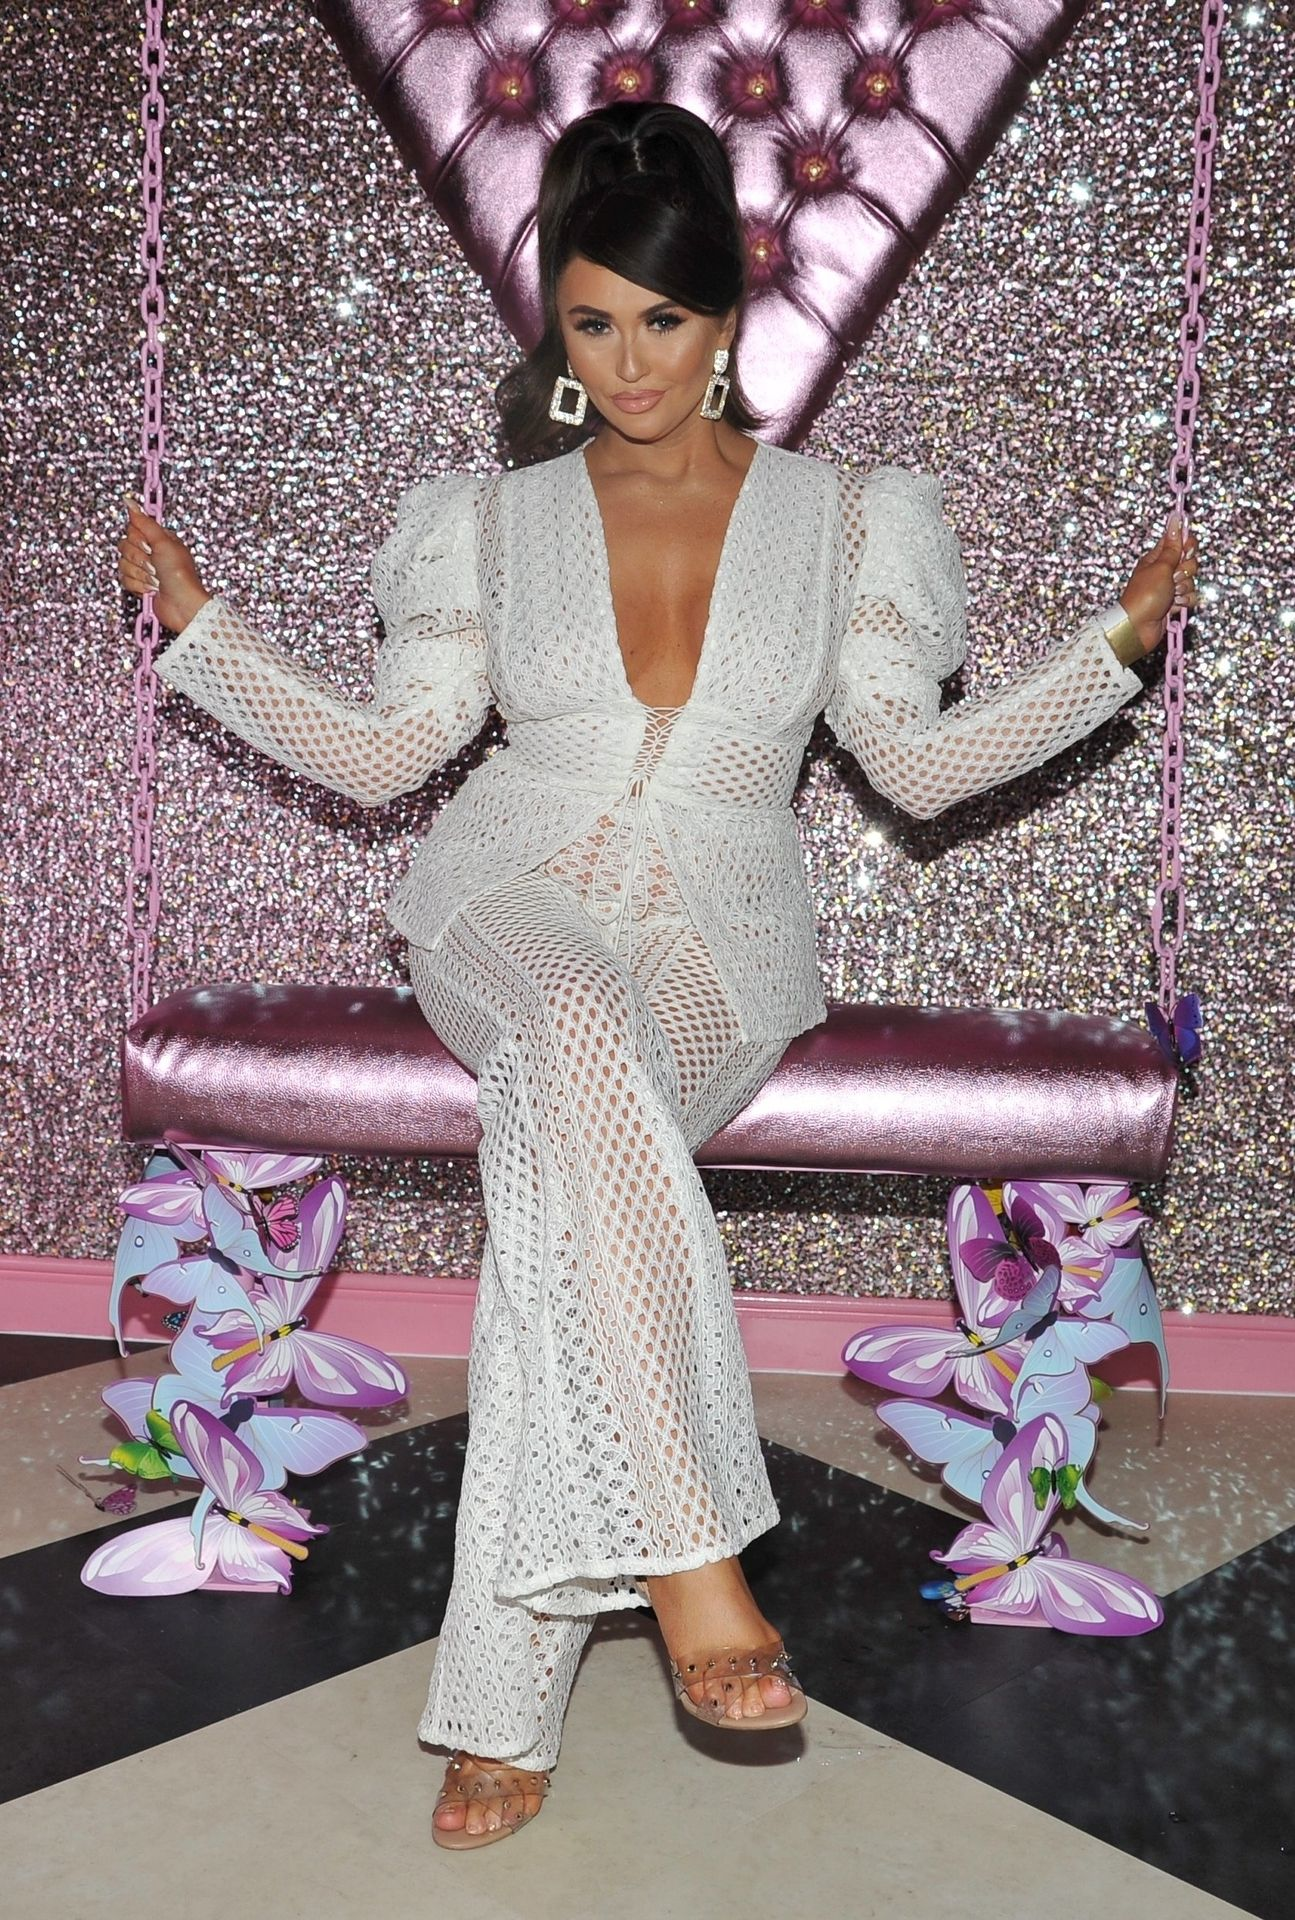 Charlotte Dawson Shows Her Boobs At Avenue Nightclub Launch Party 0001